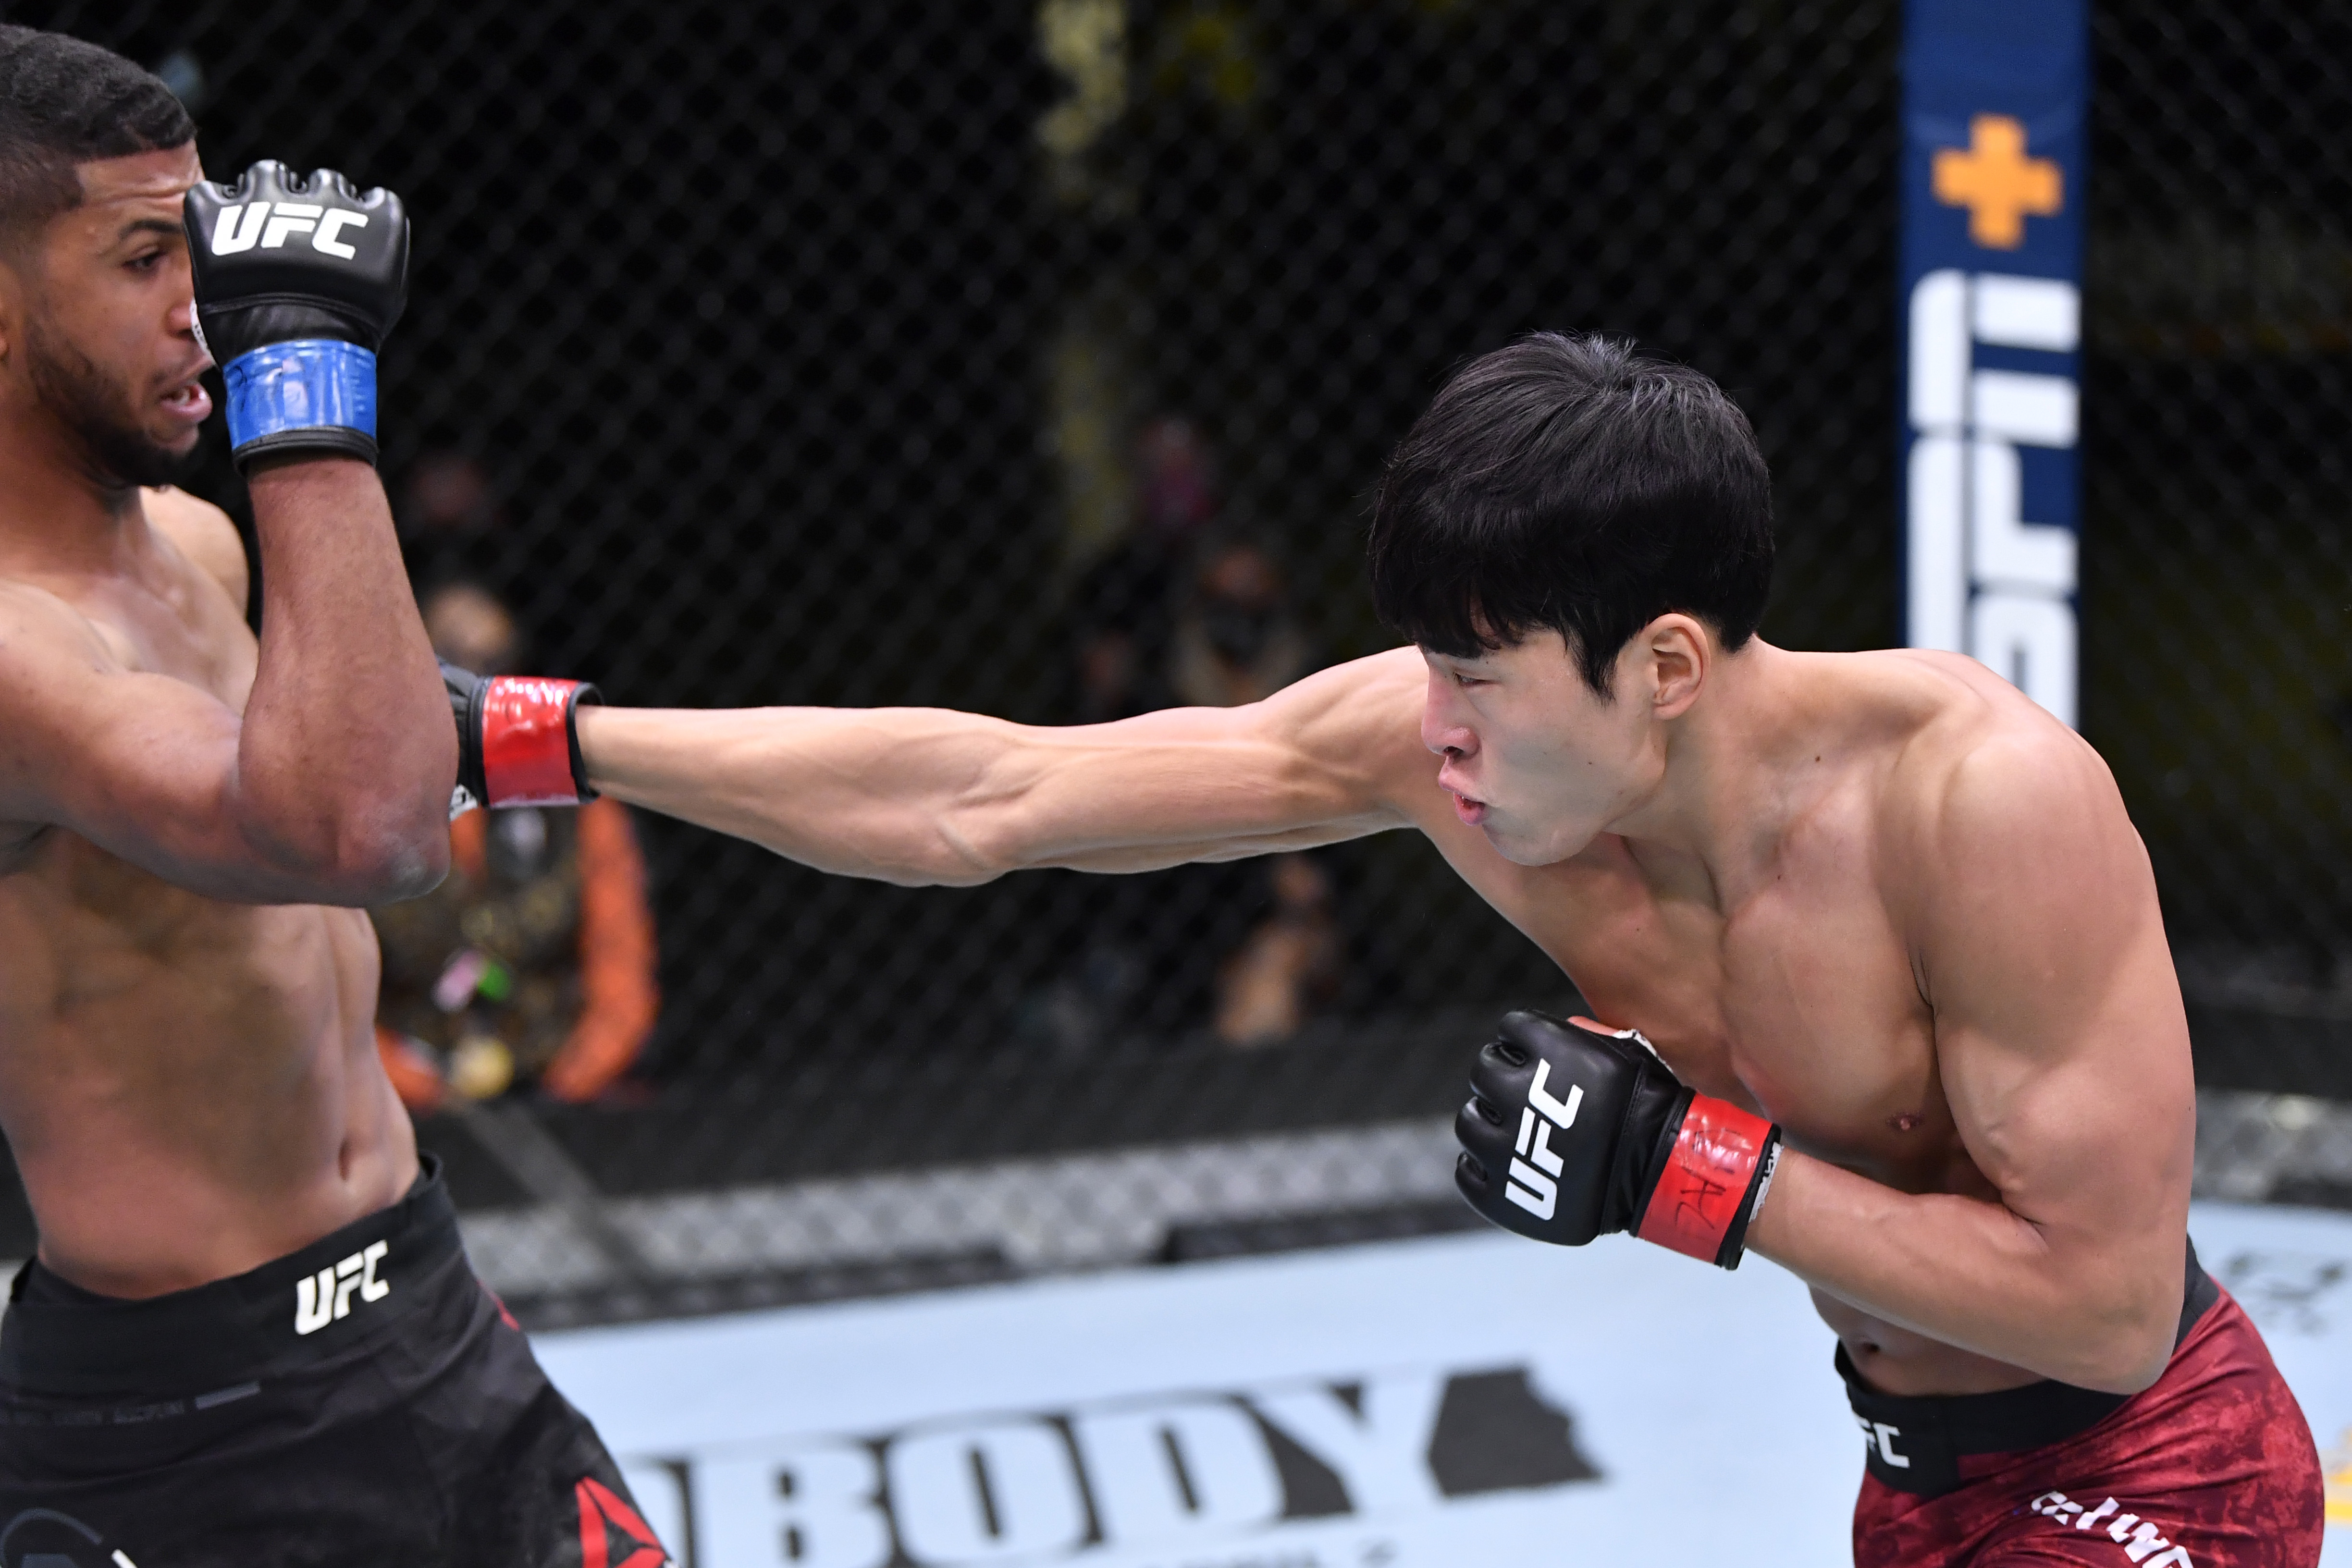 LAS VEGAS, NEVADA - FEBRUARY 06: In this handout image provided by UFC, (R-L) Seungwoo Choi of South Korea punches Youssef Zalal of Morocco in their featherweight fight during the UFC Fight Night event at UFC APEX on February 06, 2021 in Las Vegas, Nevada. (Photo by Chris Unger/Zuffa LLC via Getty Images)